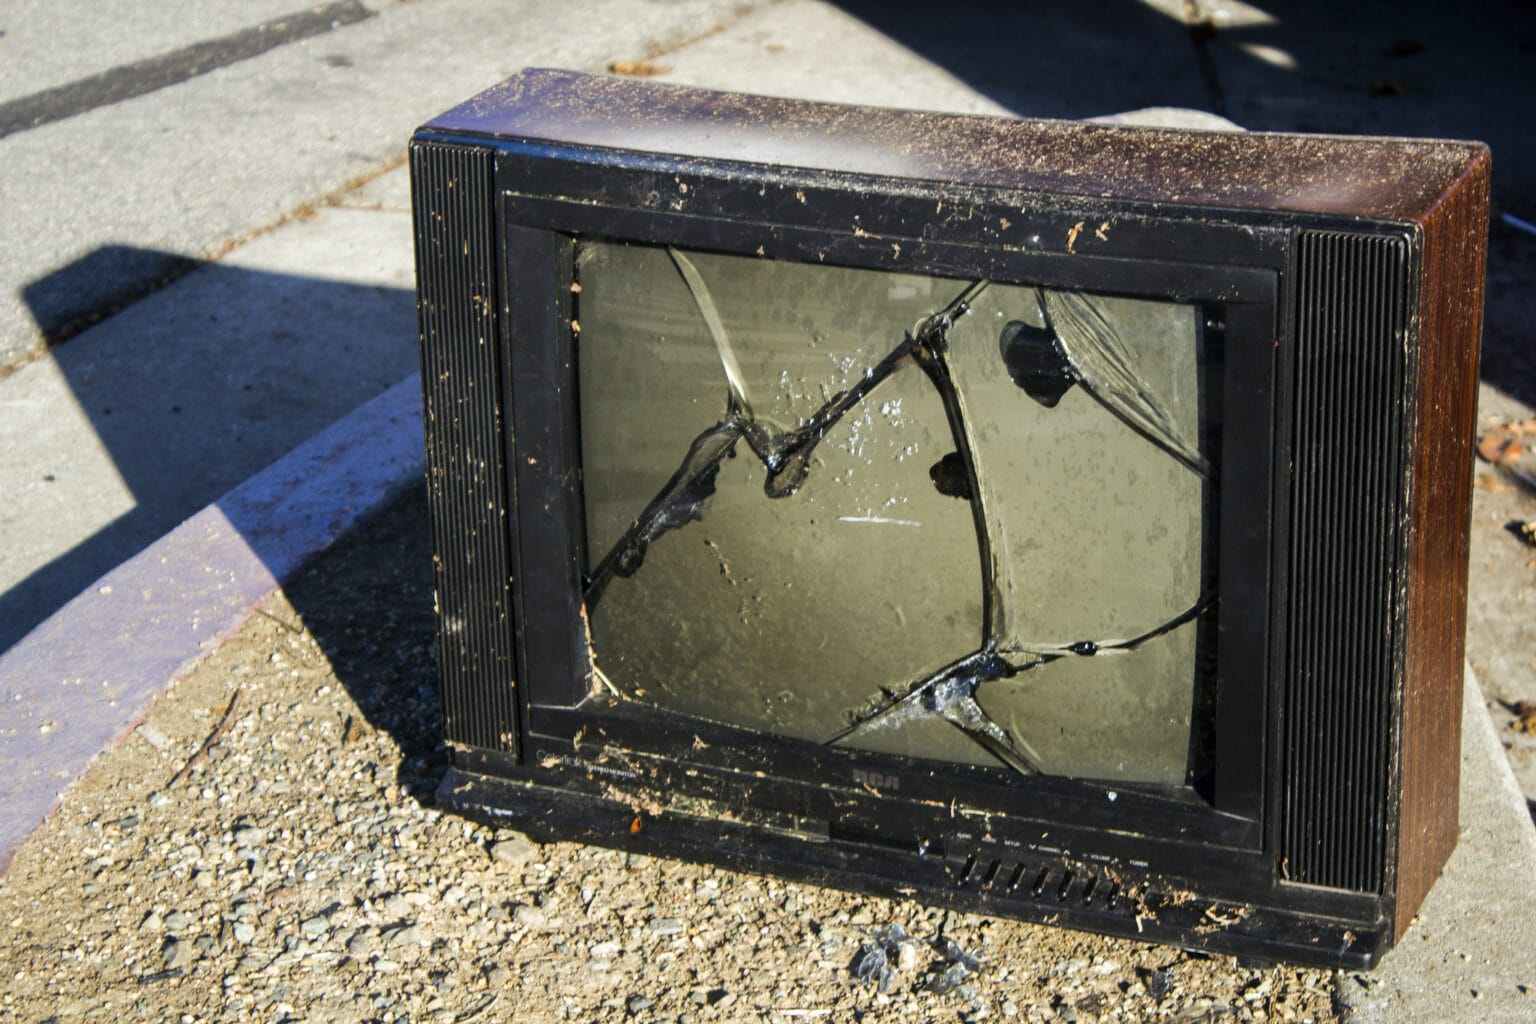 M1 MacBook screen cracks lead to lawsuit. Look out, Cupertino.